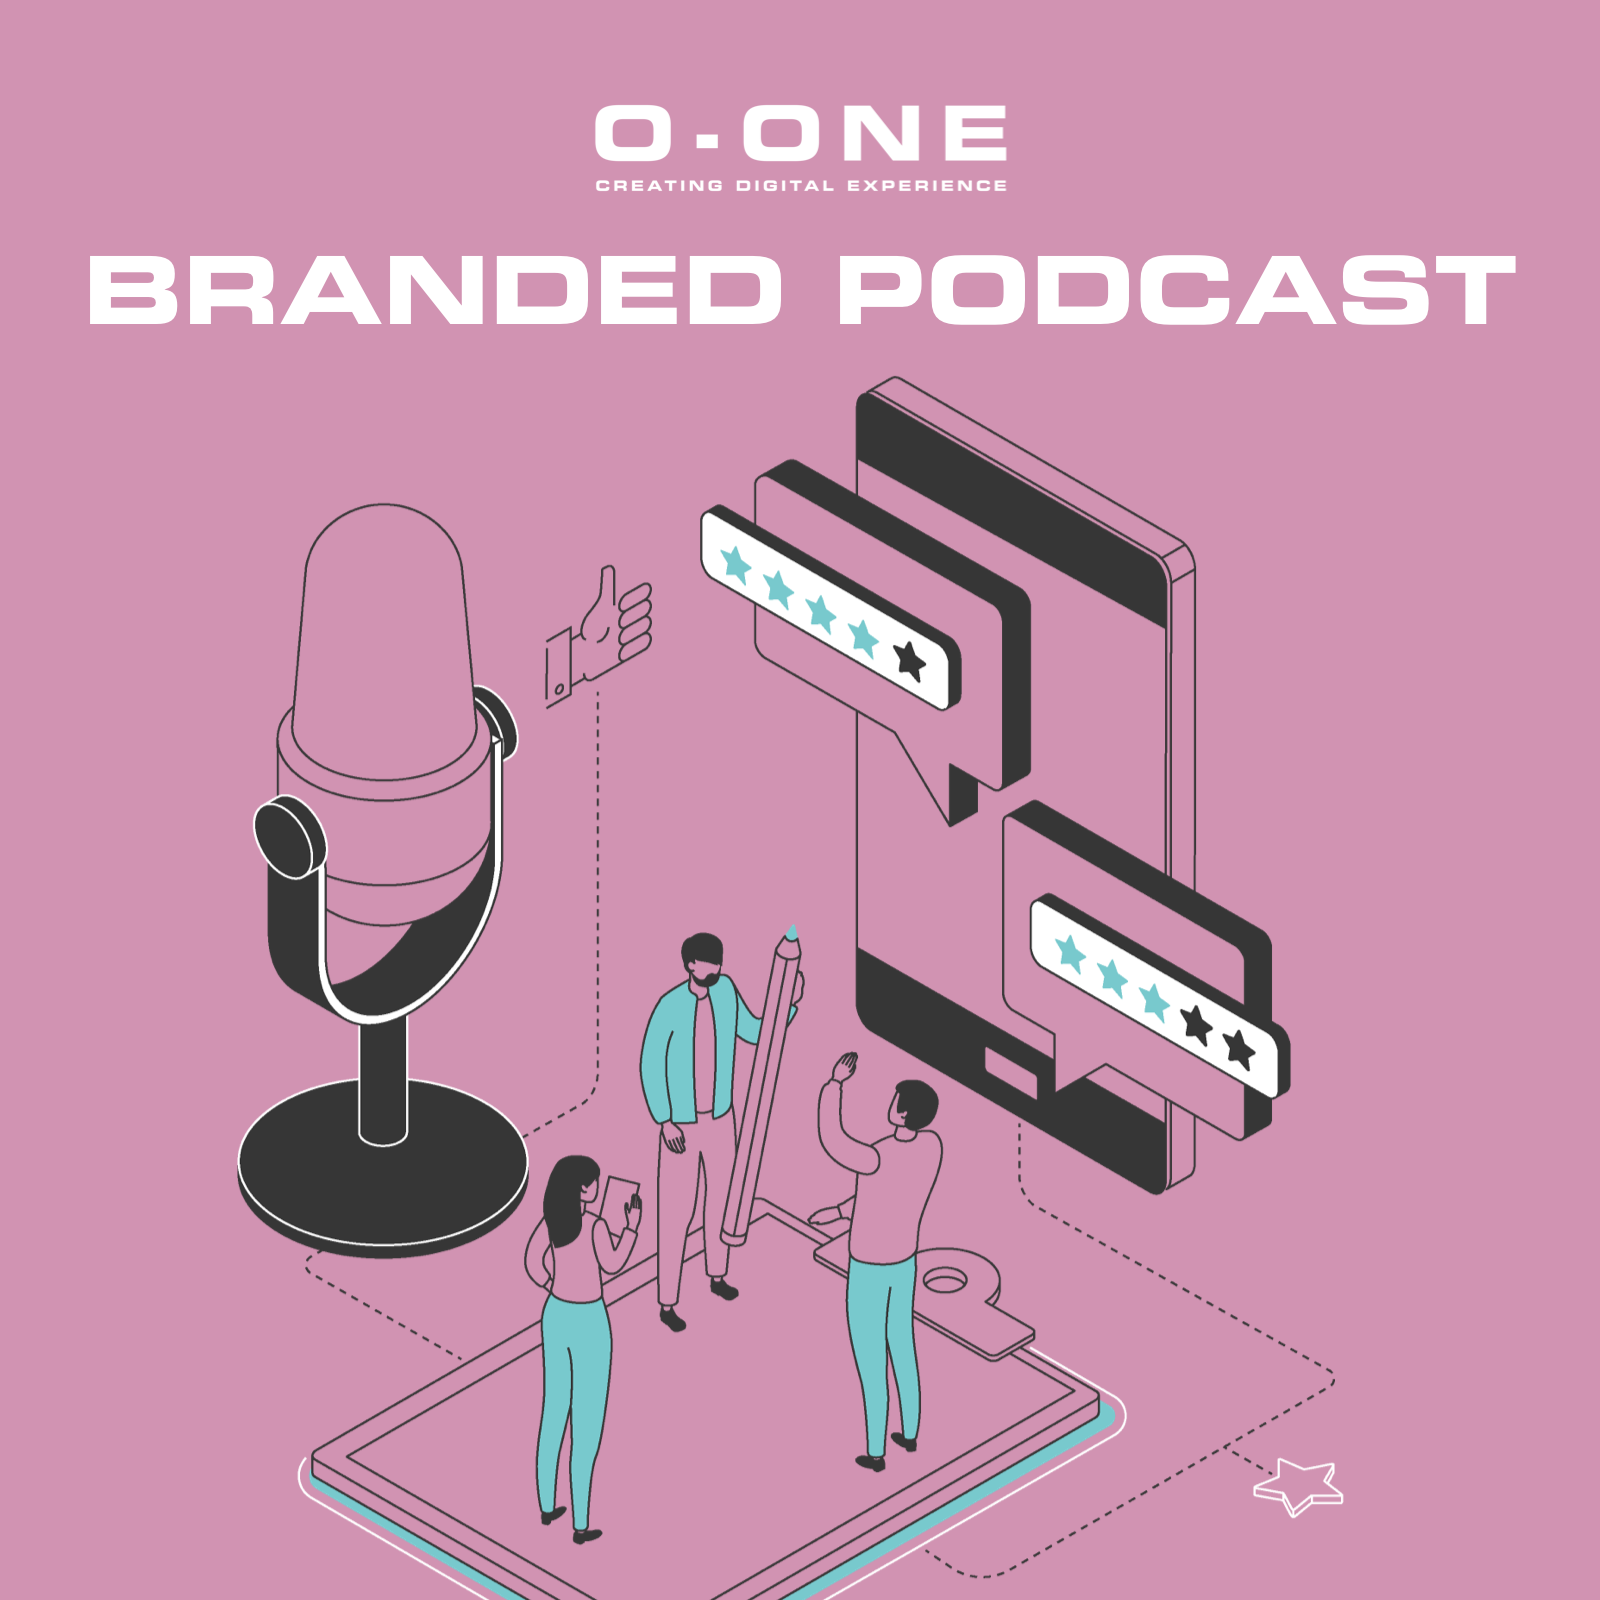 o-one-branded-podcast-notizia-3A-800x800-@2x.png